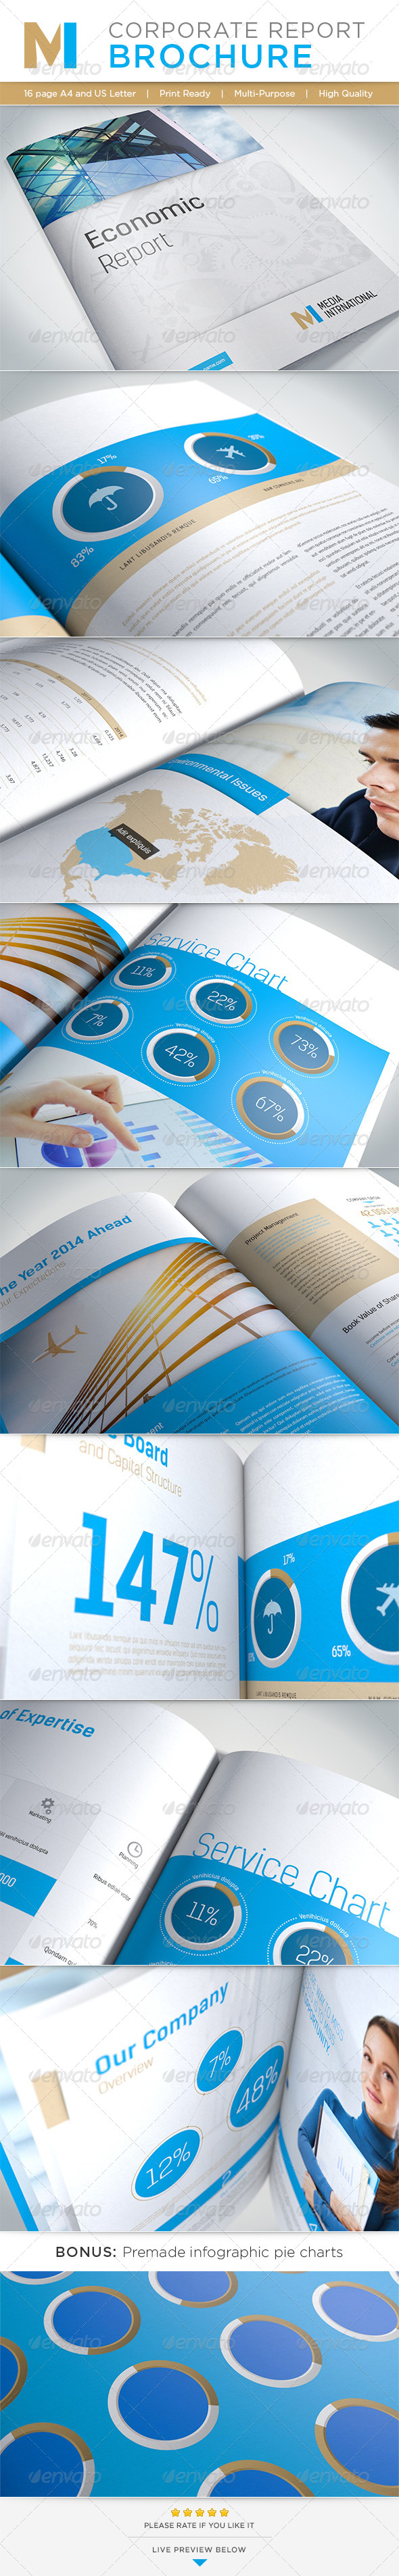 Corporate Report Brochure - Corporate Brochures